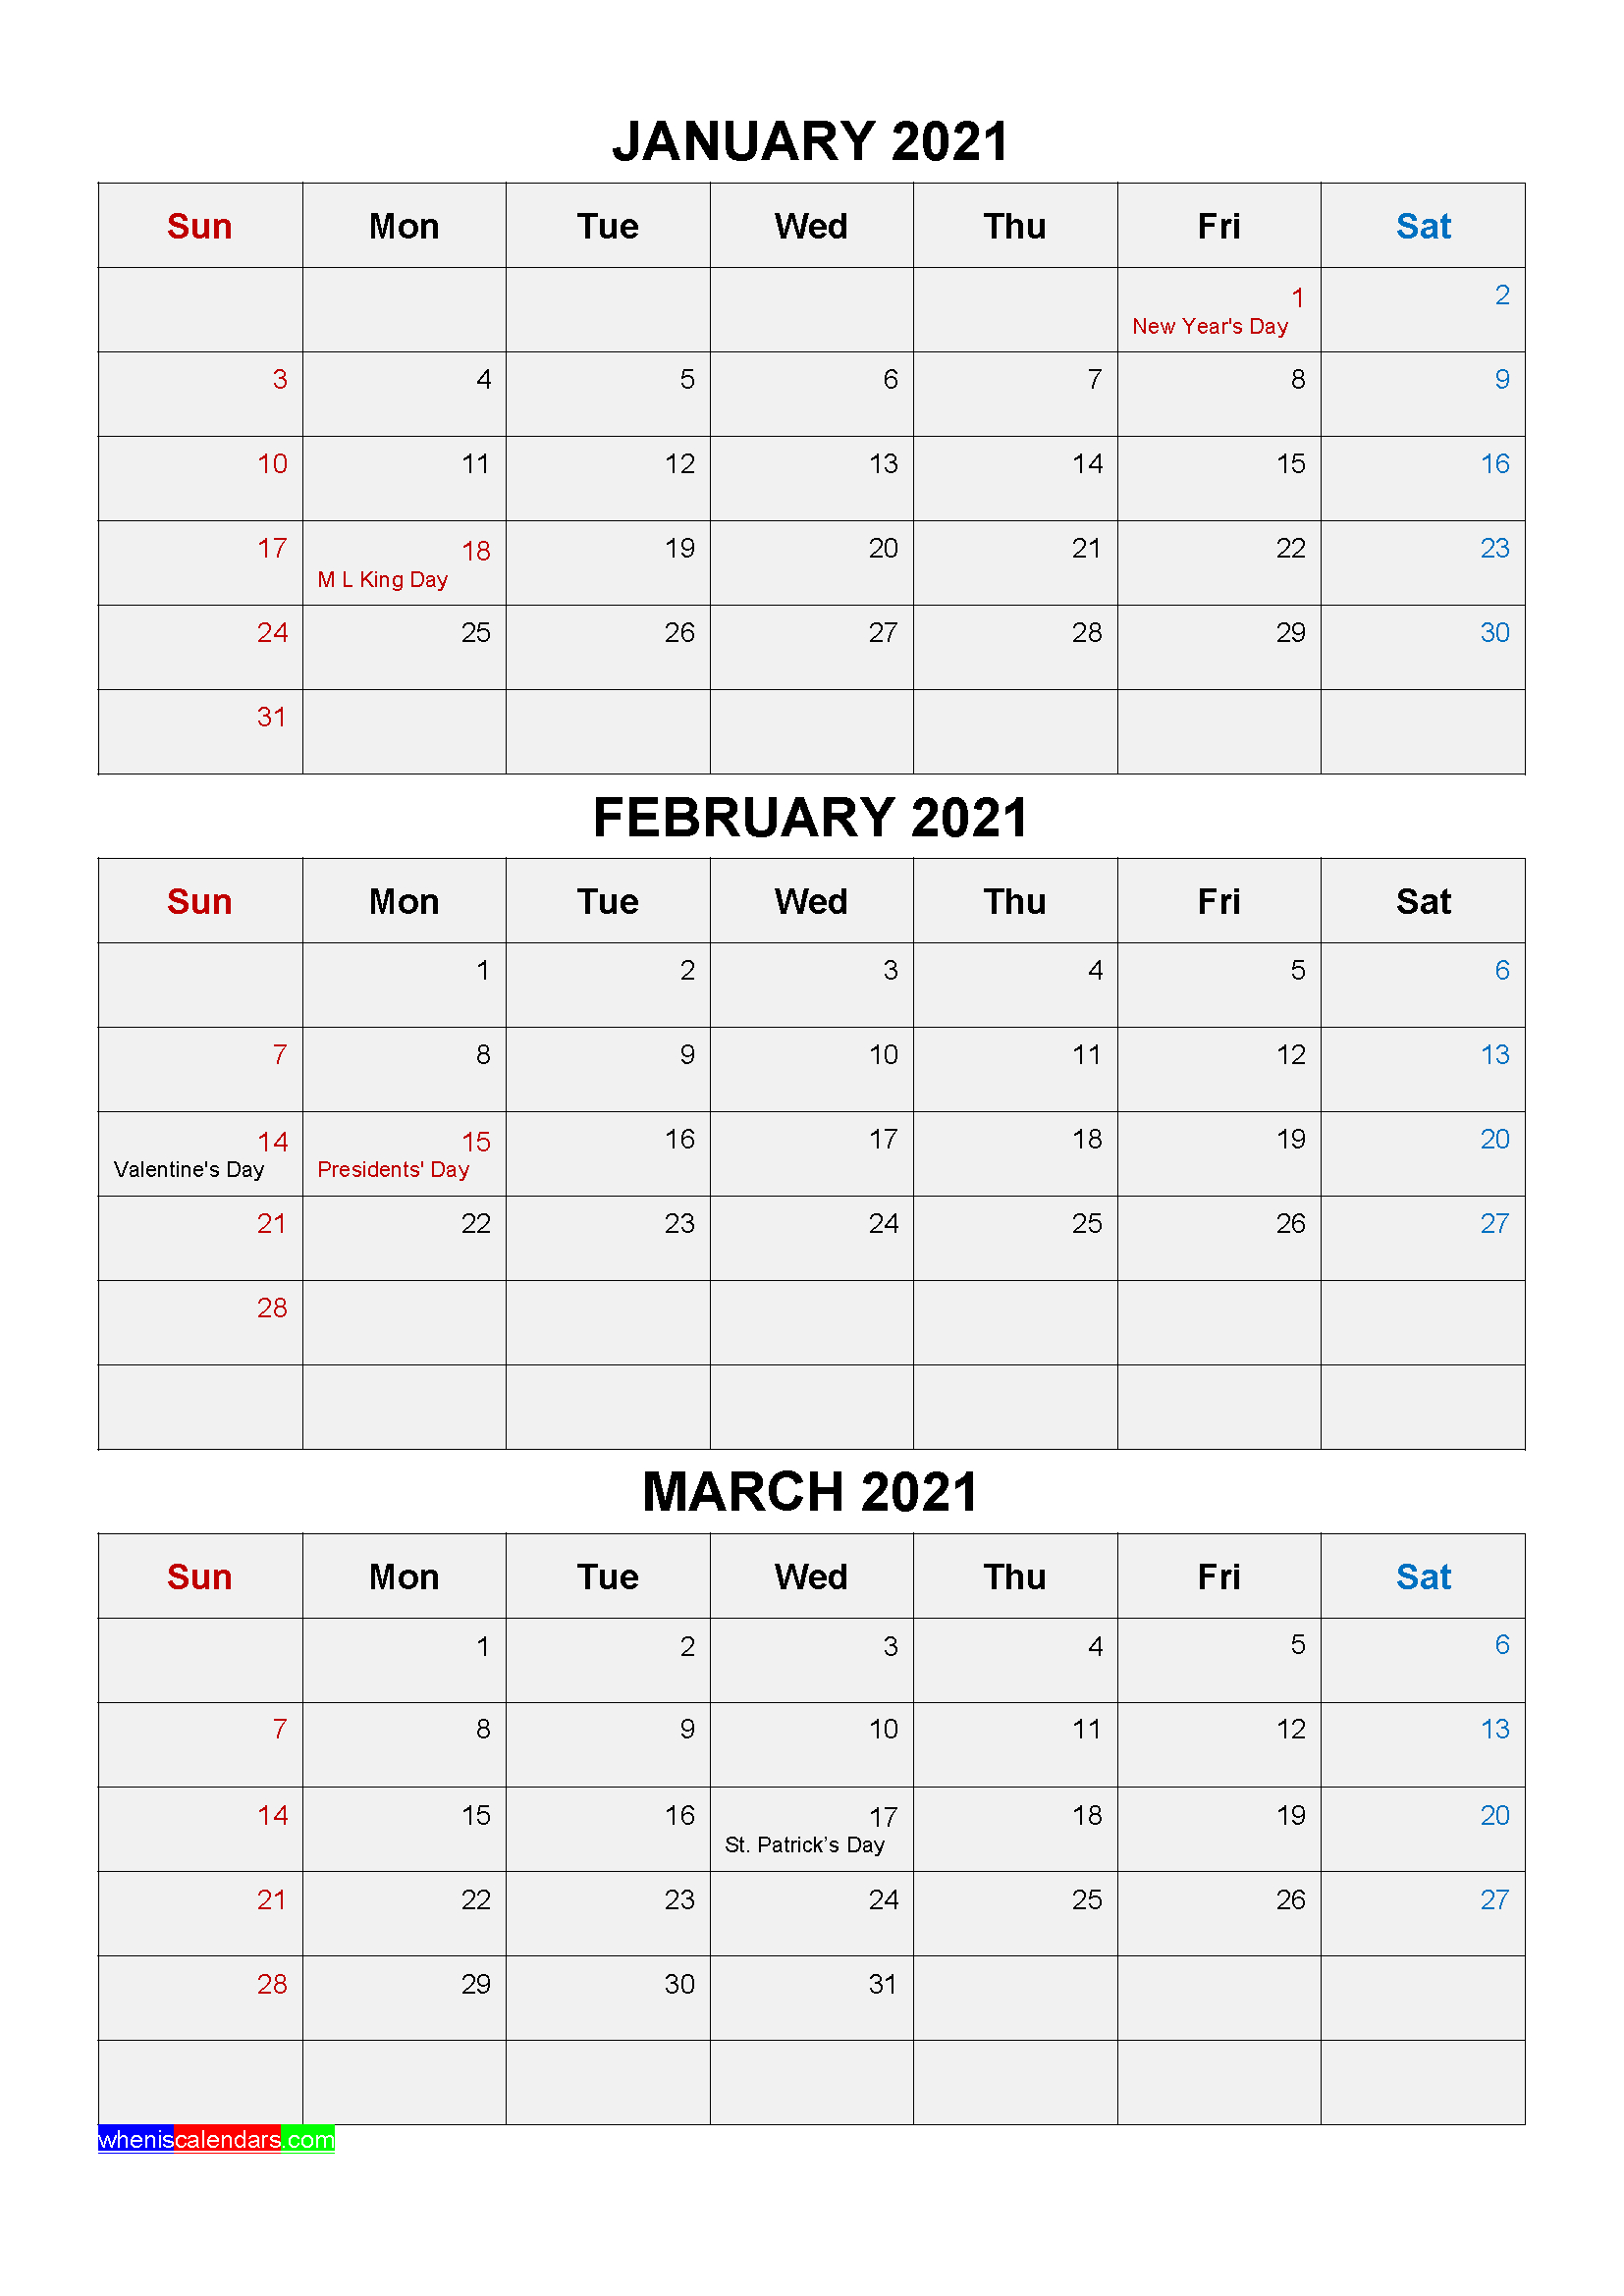 Free Printable January February March 2021 Calendar 3 within Three Month Printable Calendar 2021